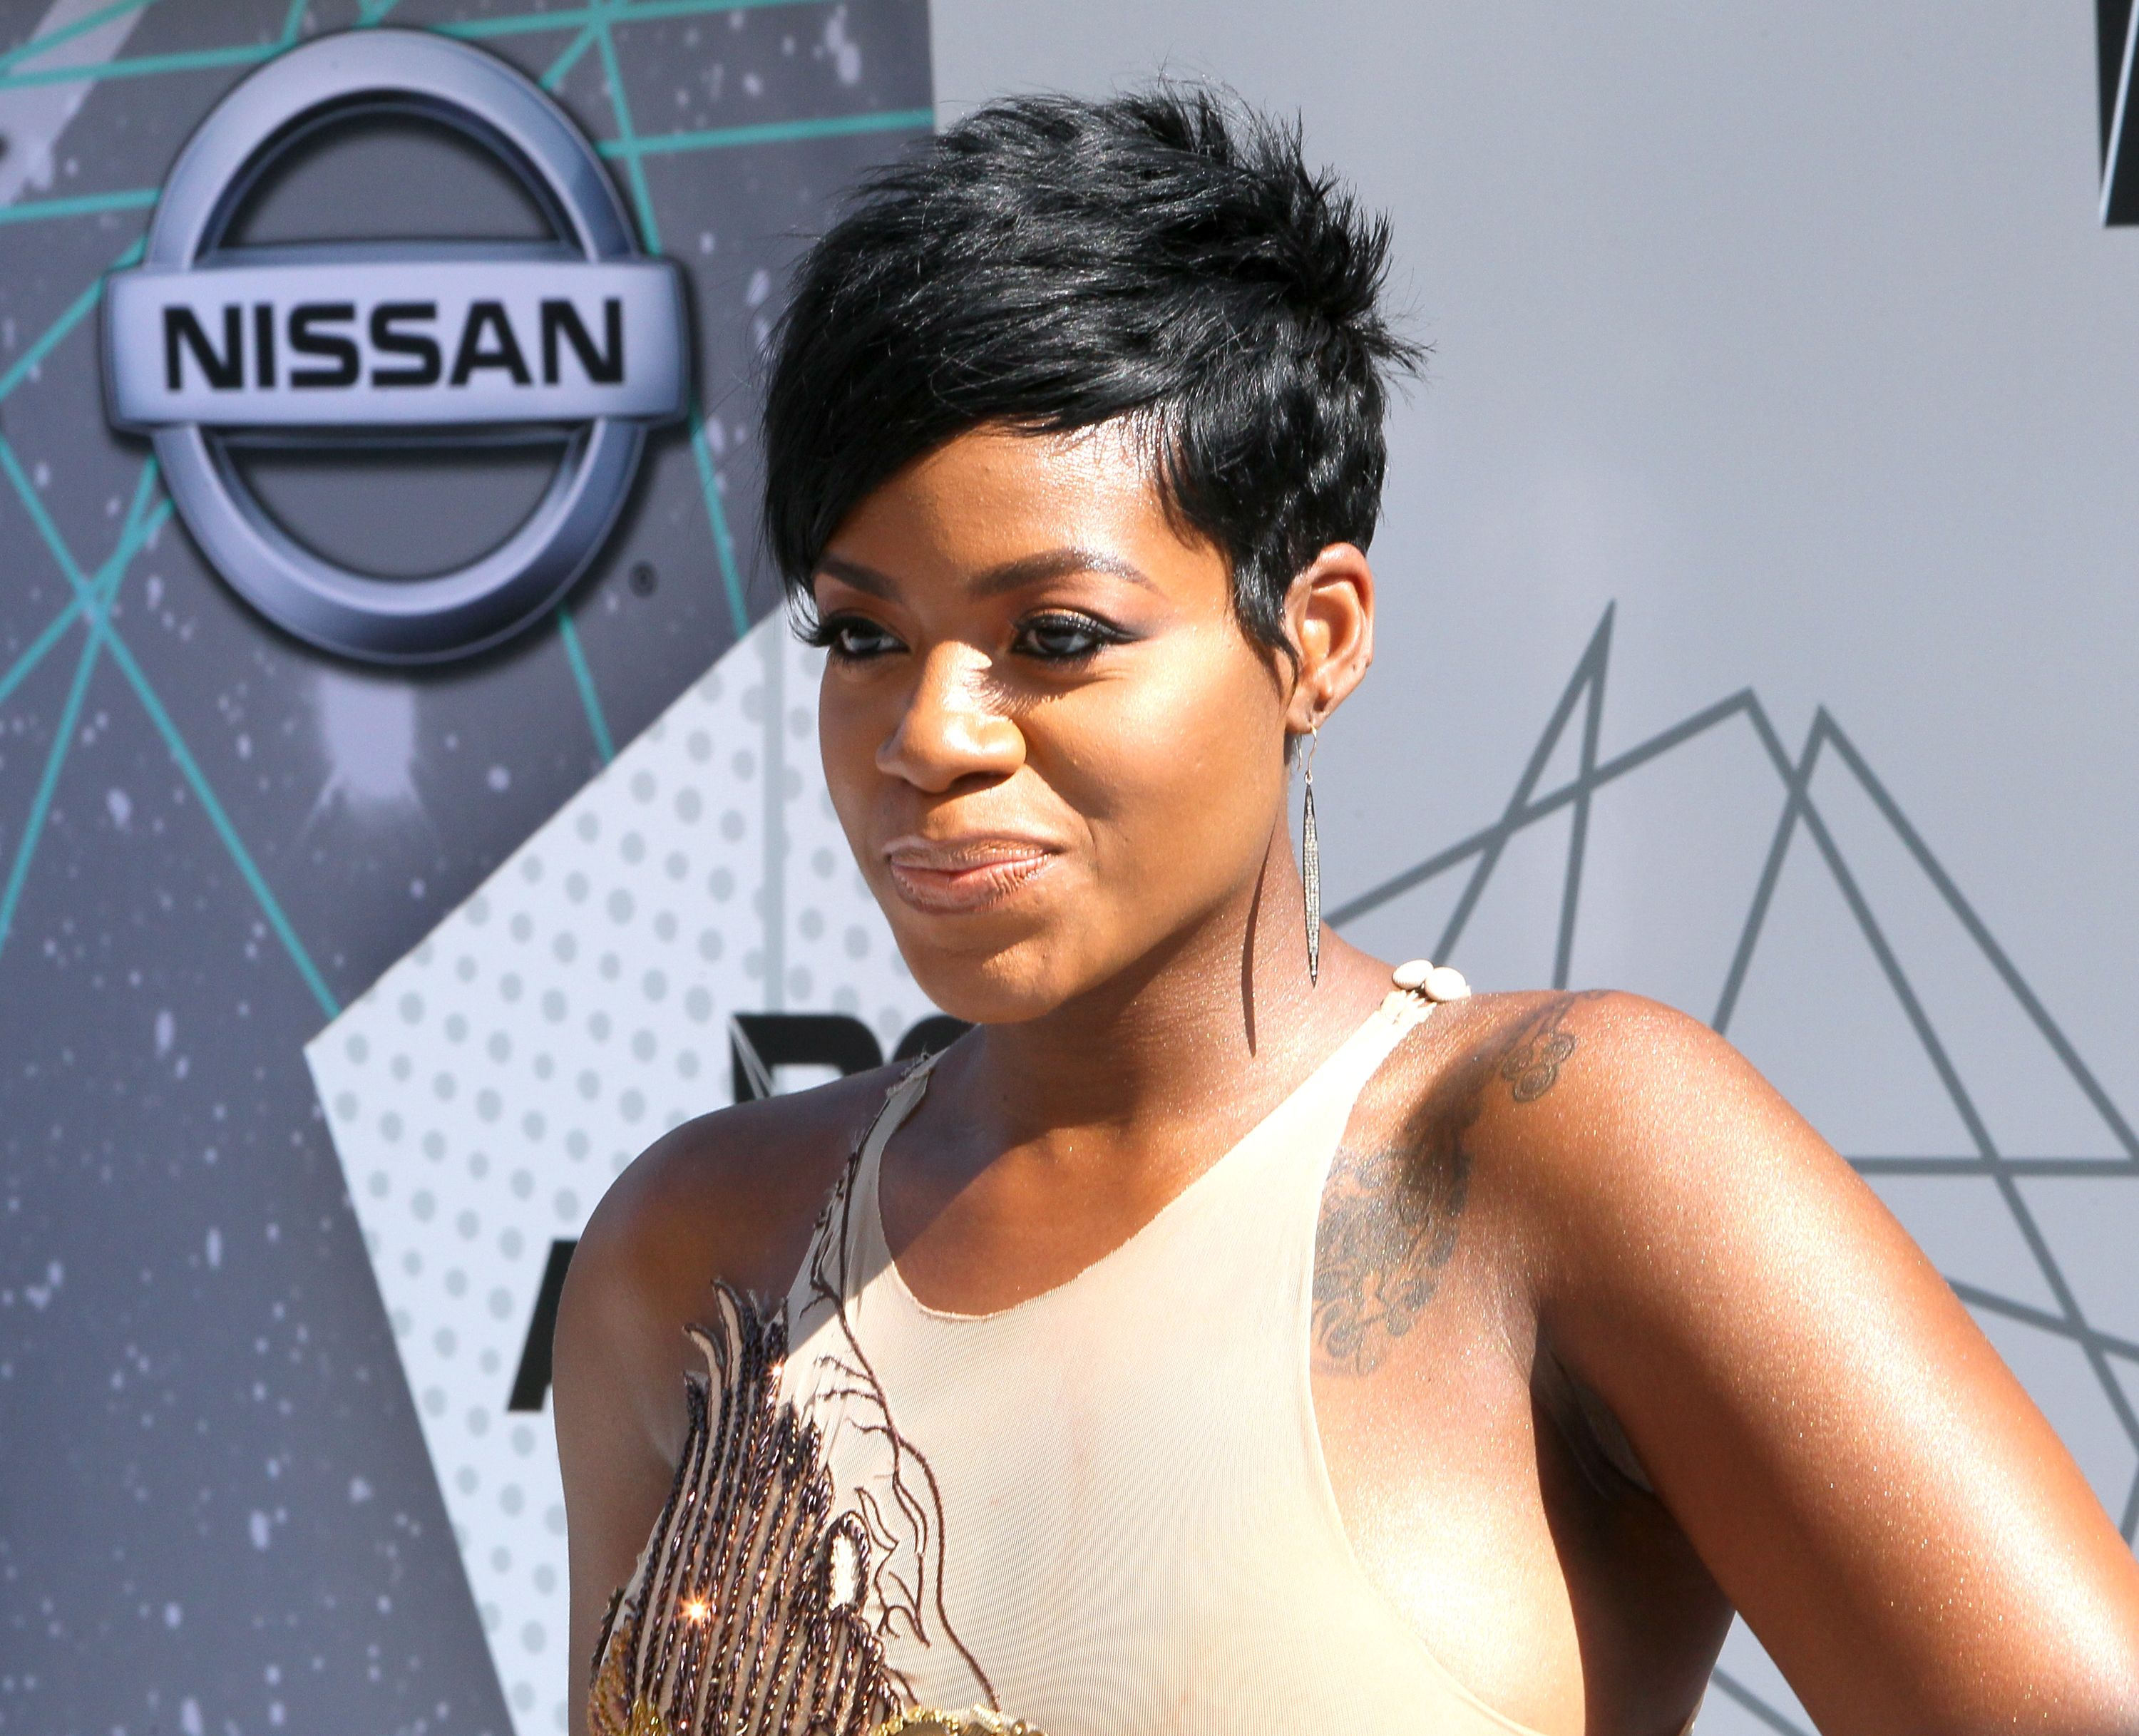 Singer Fantasia Barrino attends the 2016 BET Awards at the Microsoft Theater on June 26, 2016. | Photo: Getty Images